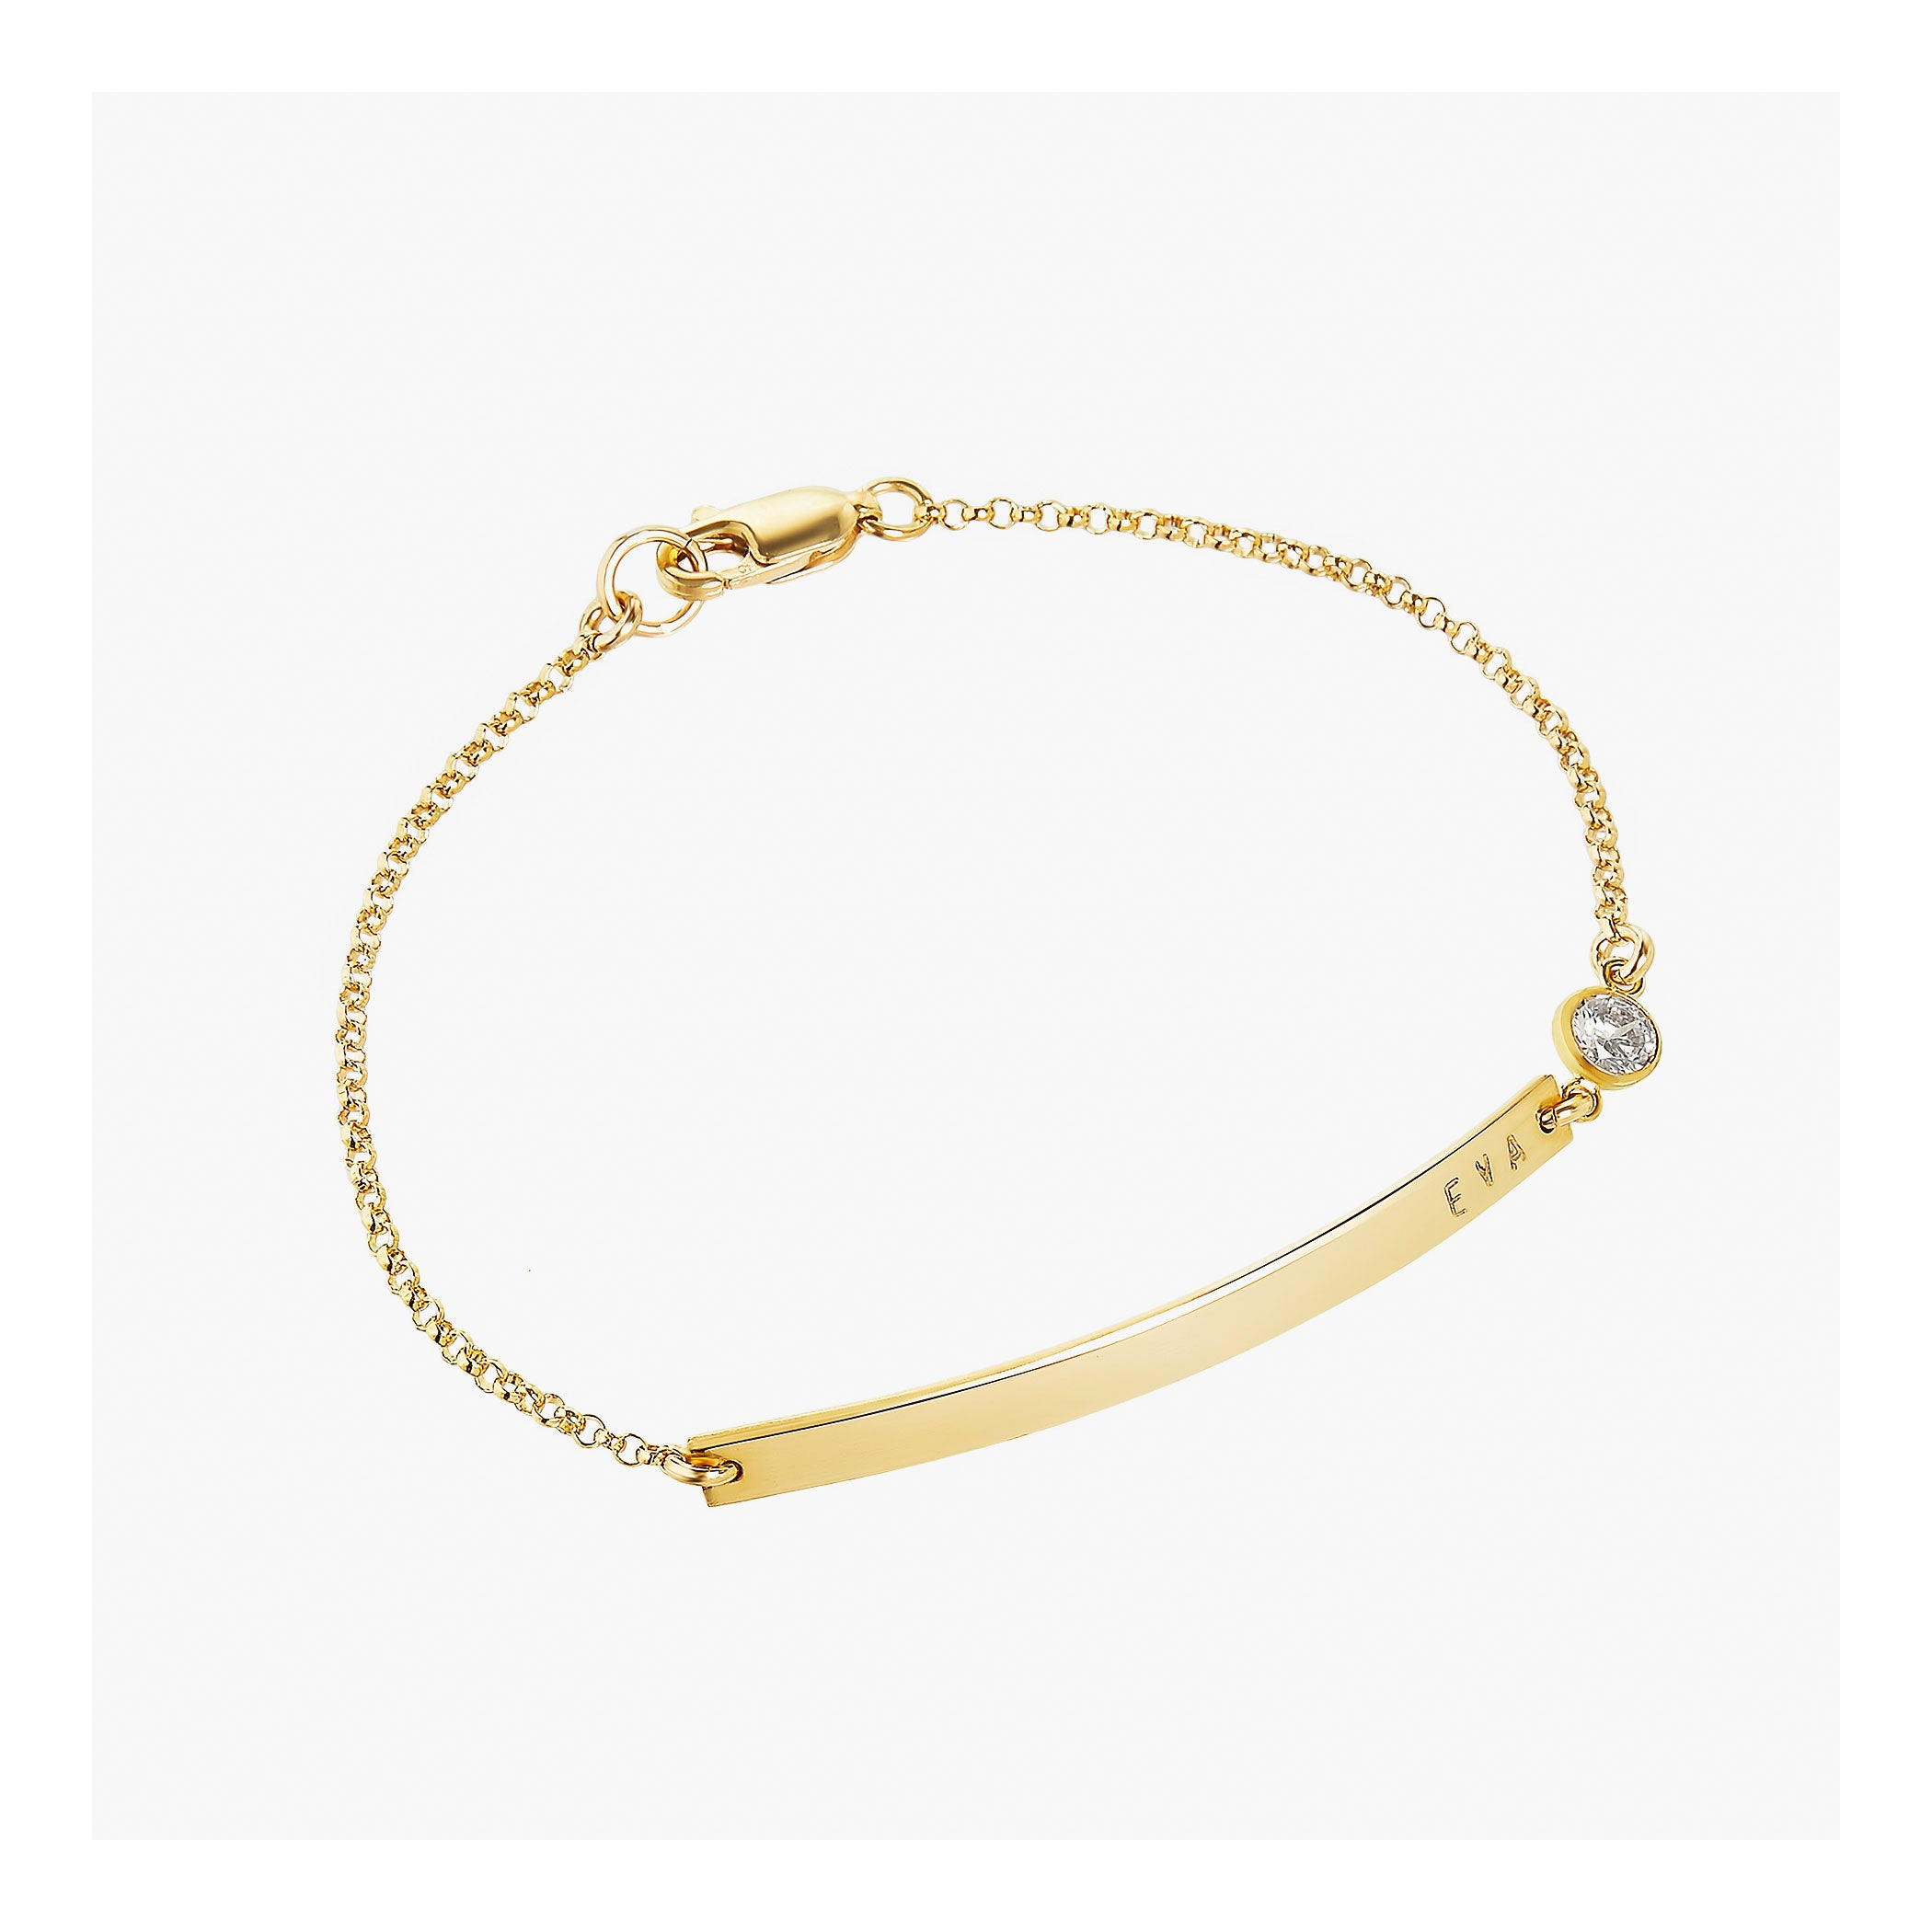 Personalized bar bracelet with birthstone, 14k gold filled or sterling silver